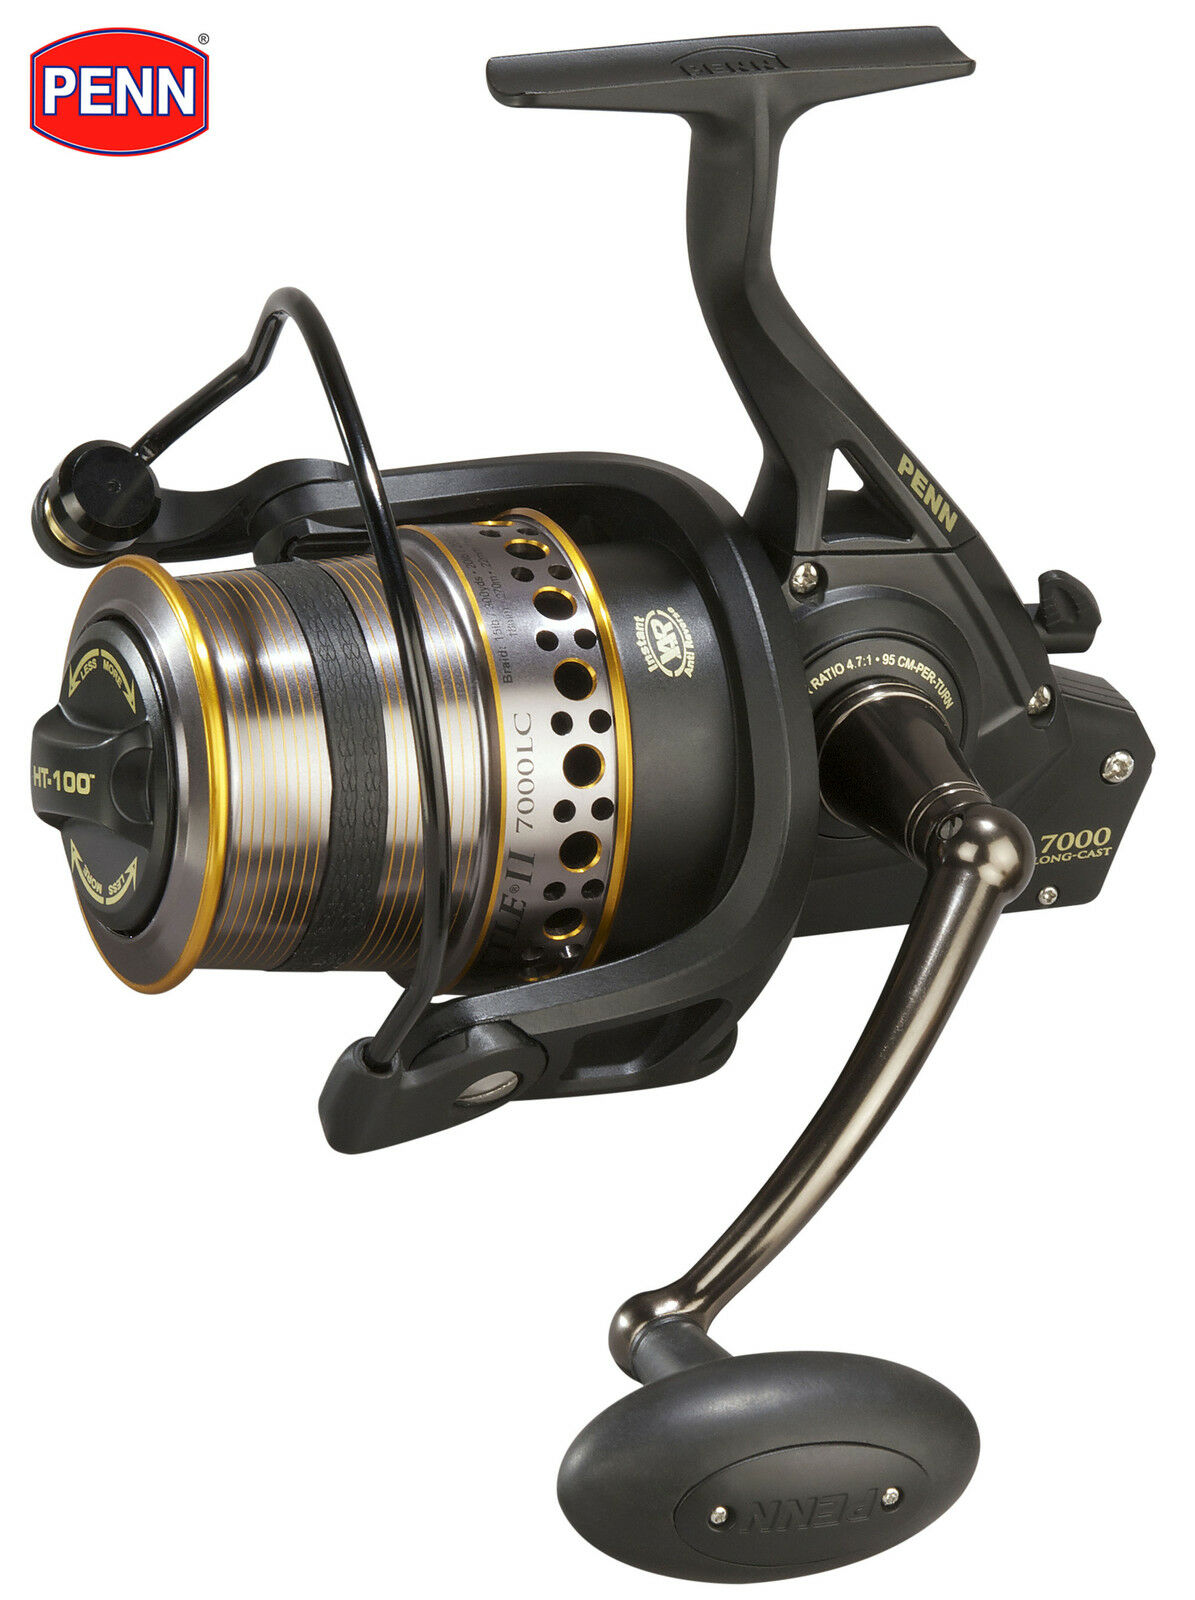 New PENN Battle II 7000 Long Cast Fishing Reel Model BTL7000LCEU No. BTL7000LCEU Model 8d2c15